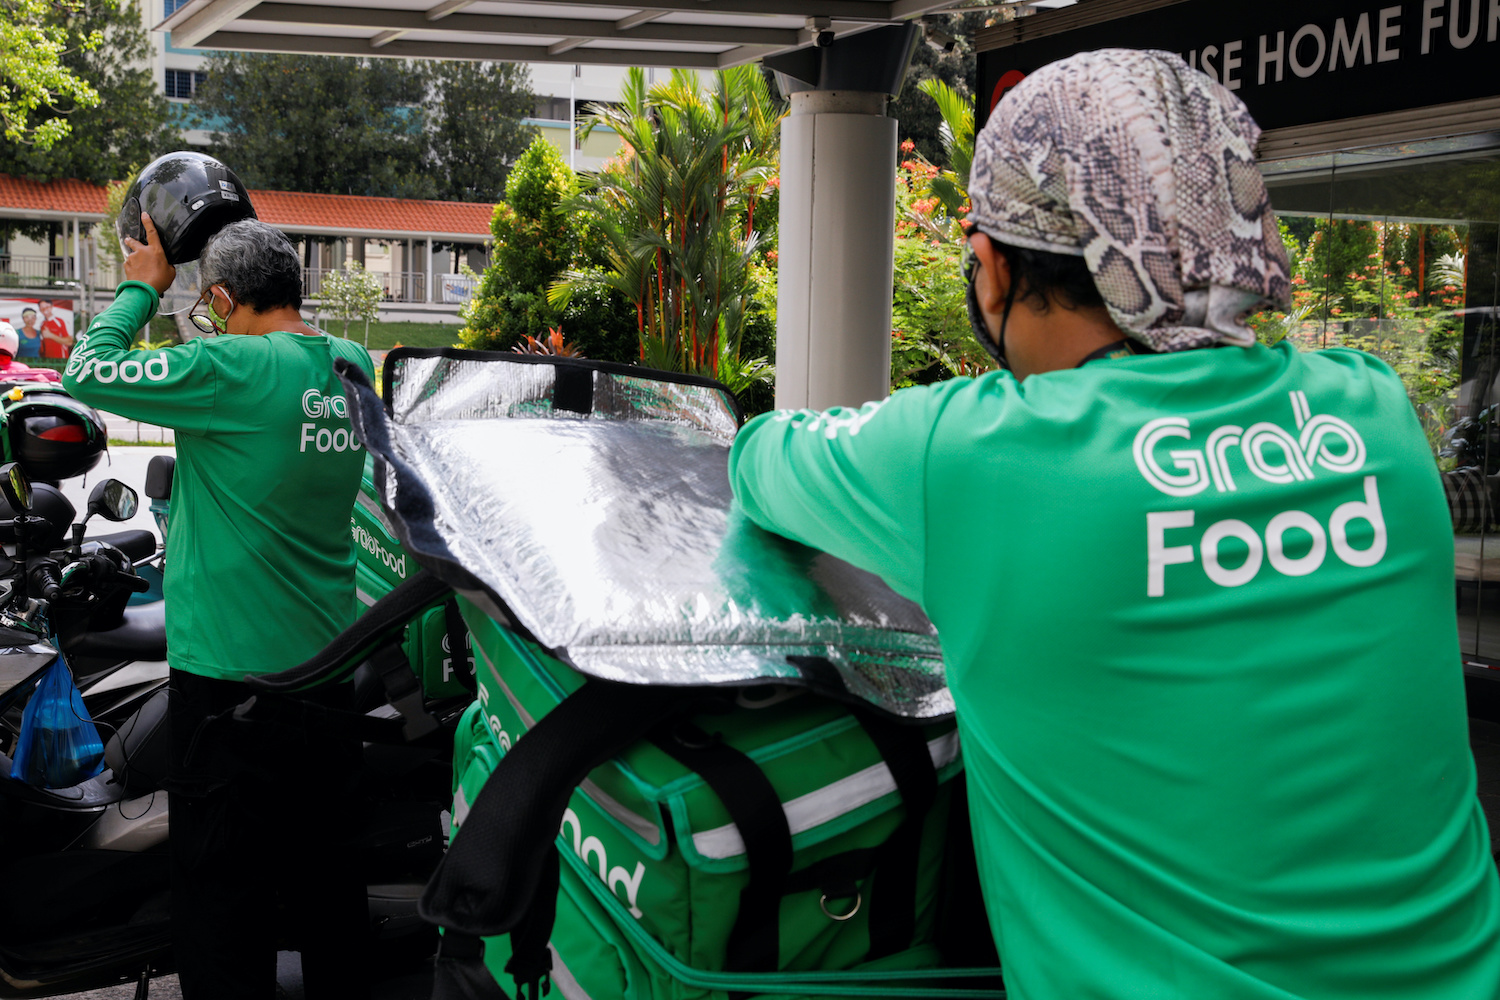 Grab Holdings confirms $40 billion Spac record